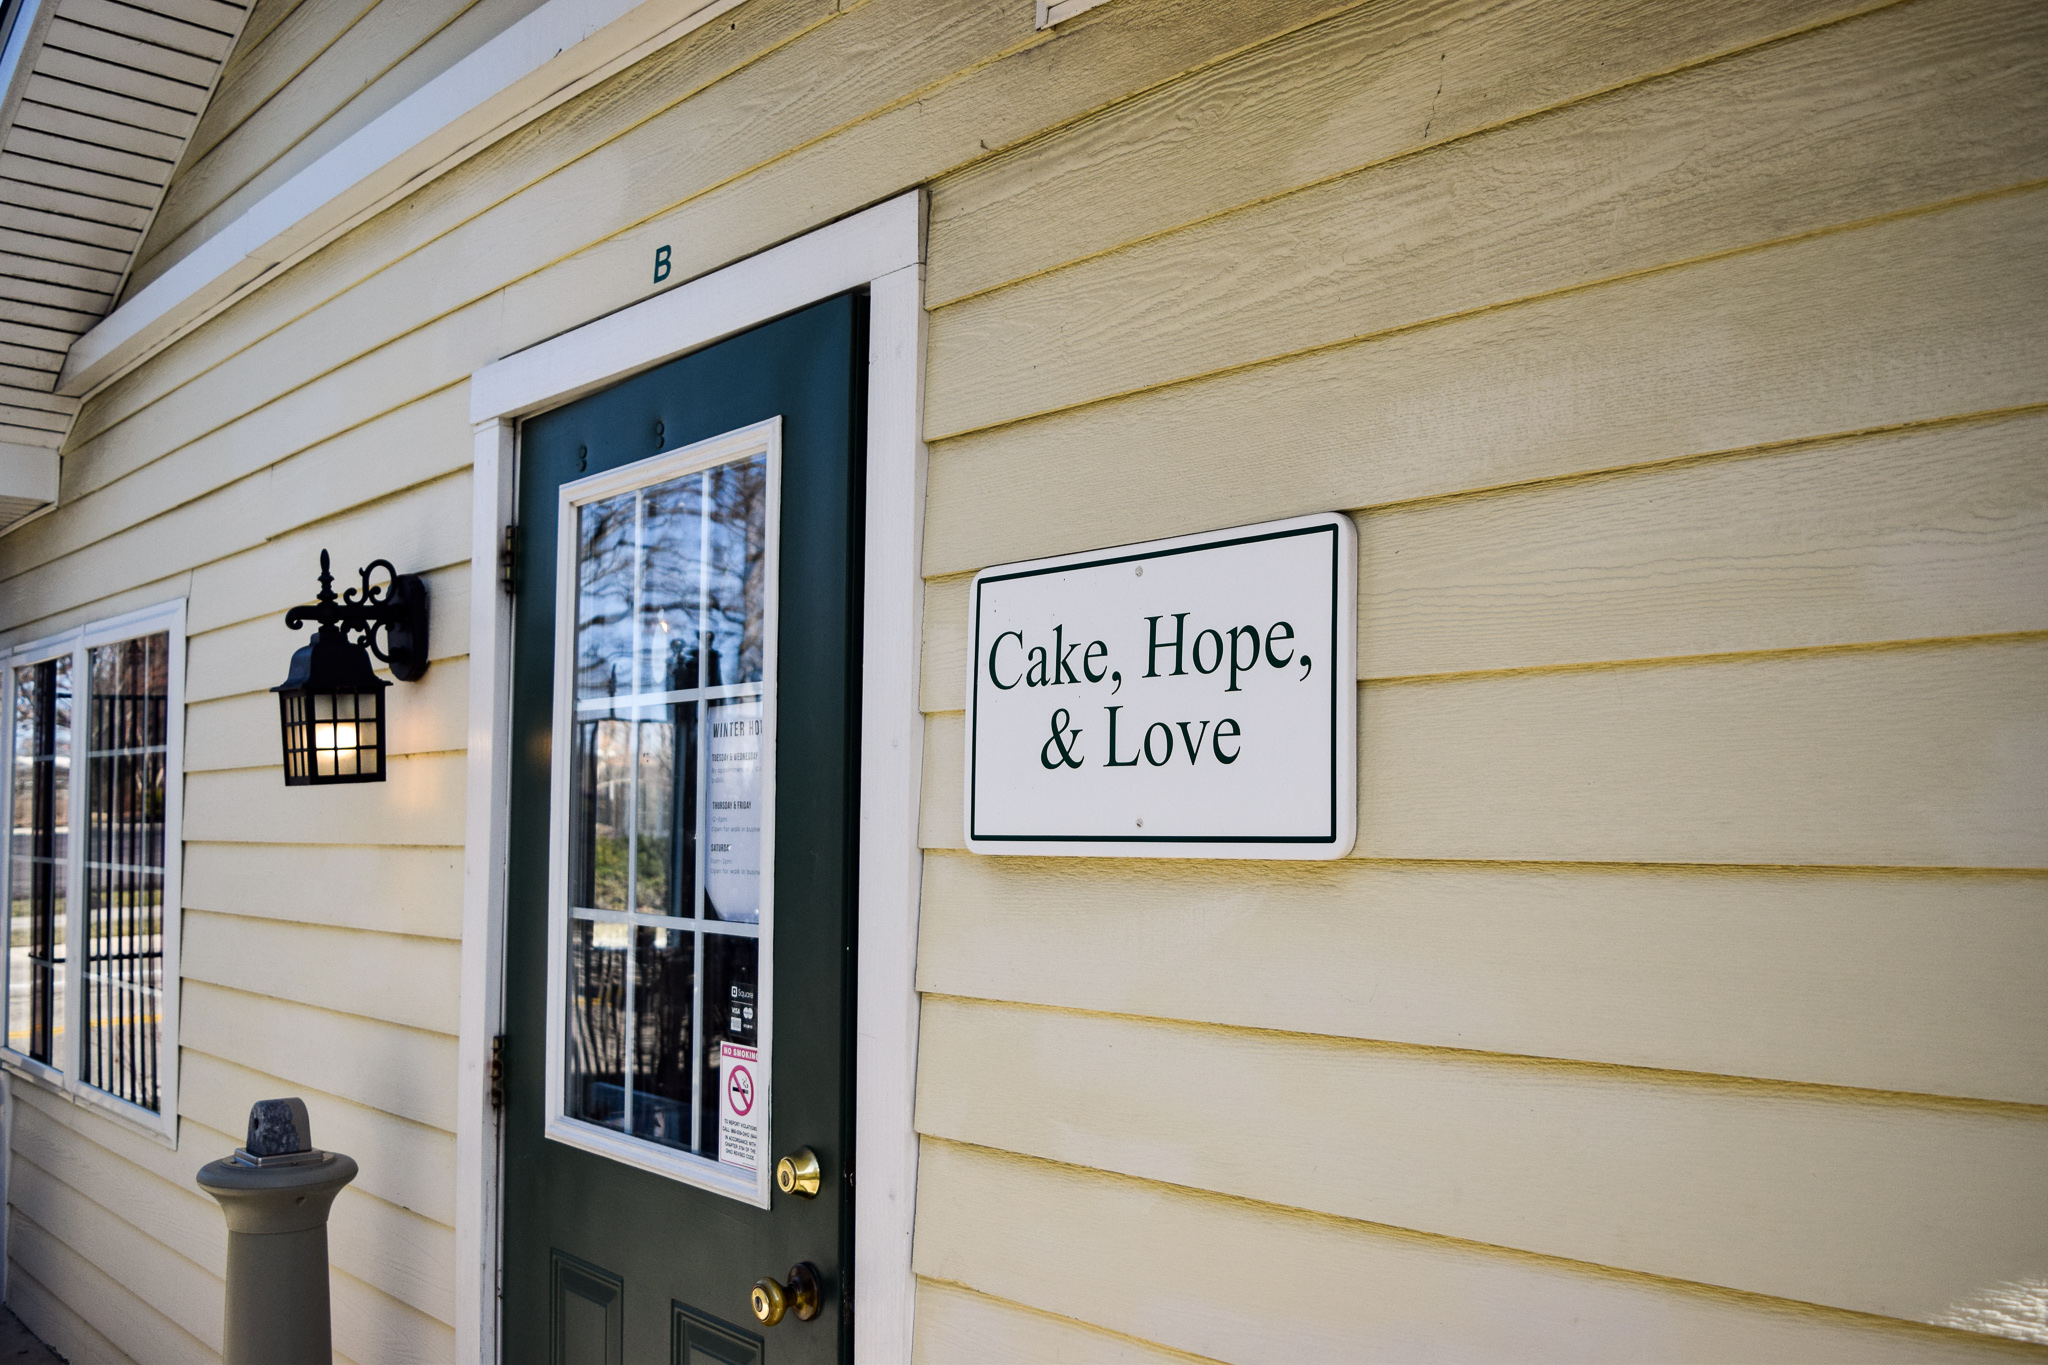 Cake, Hope & Love | Photo by Jessica Fugett | The Wright State Guardian